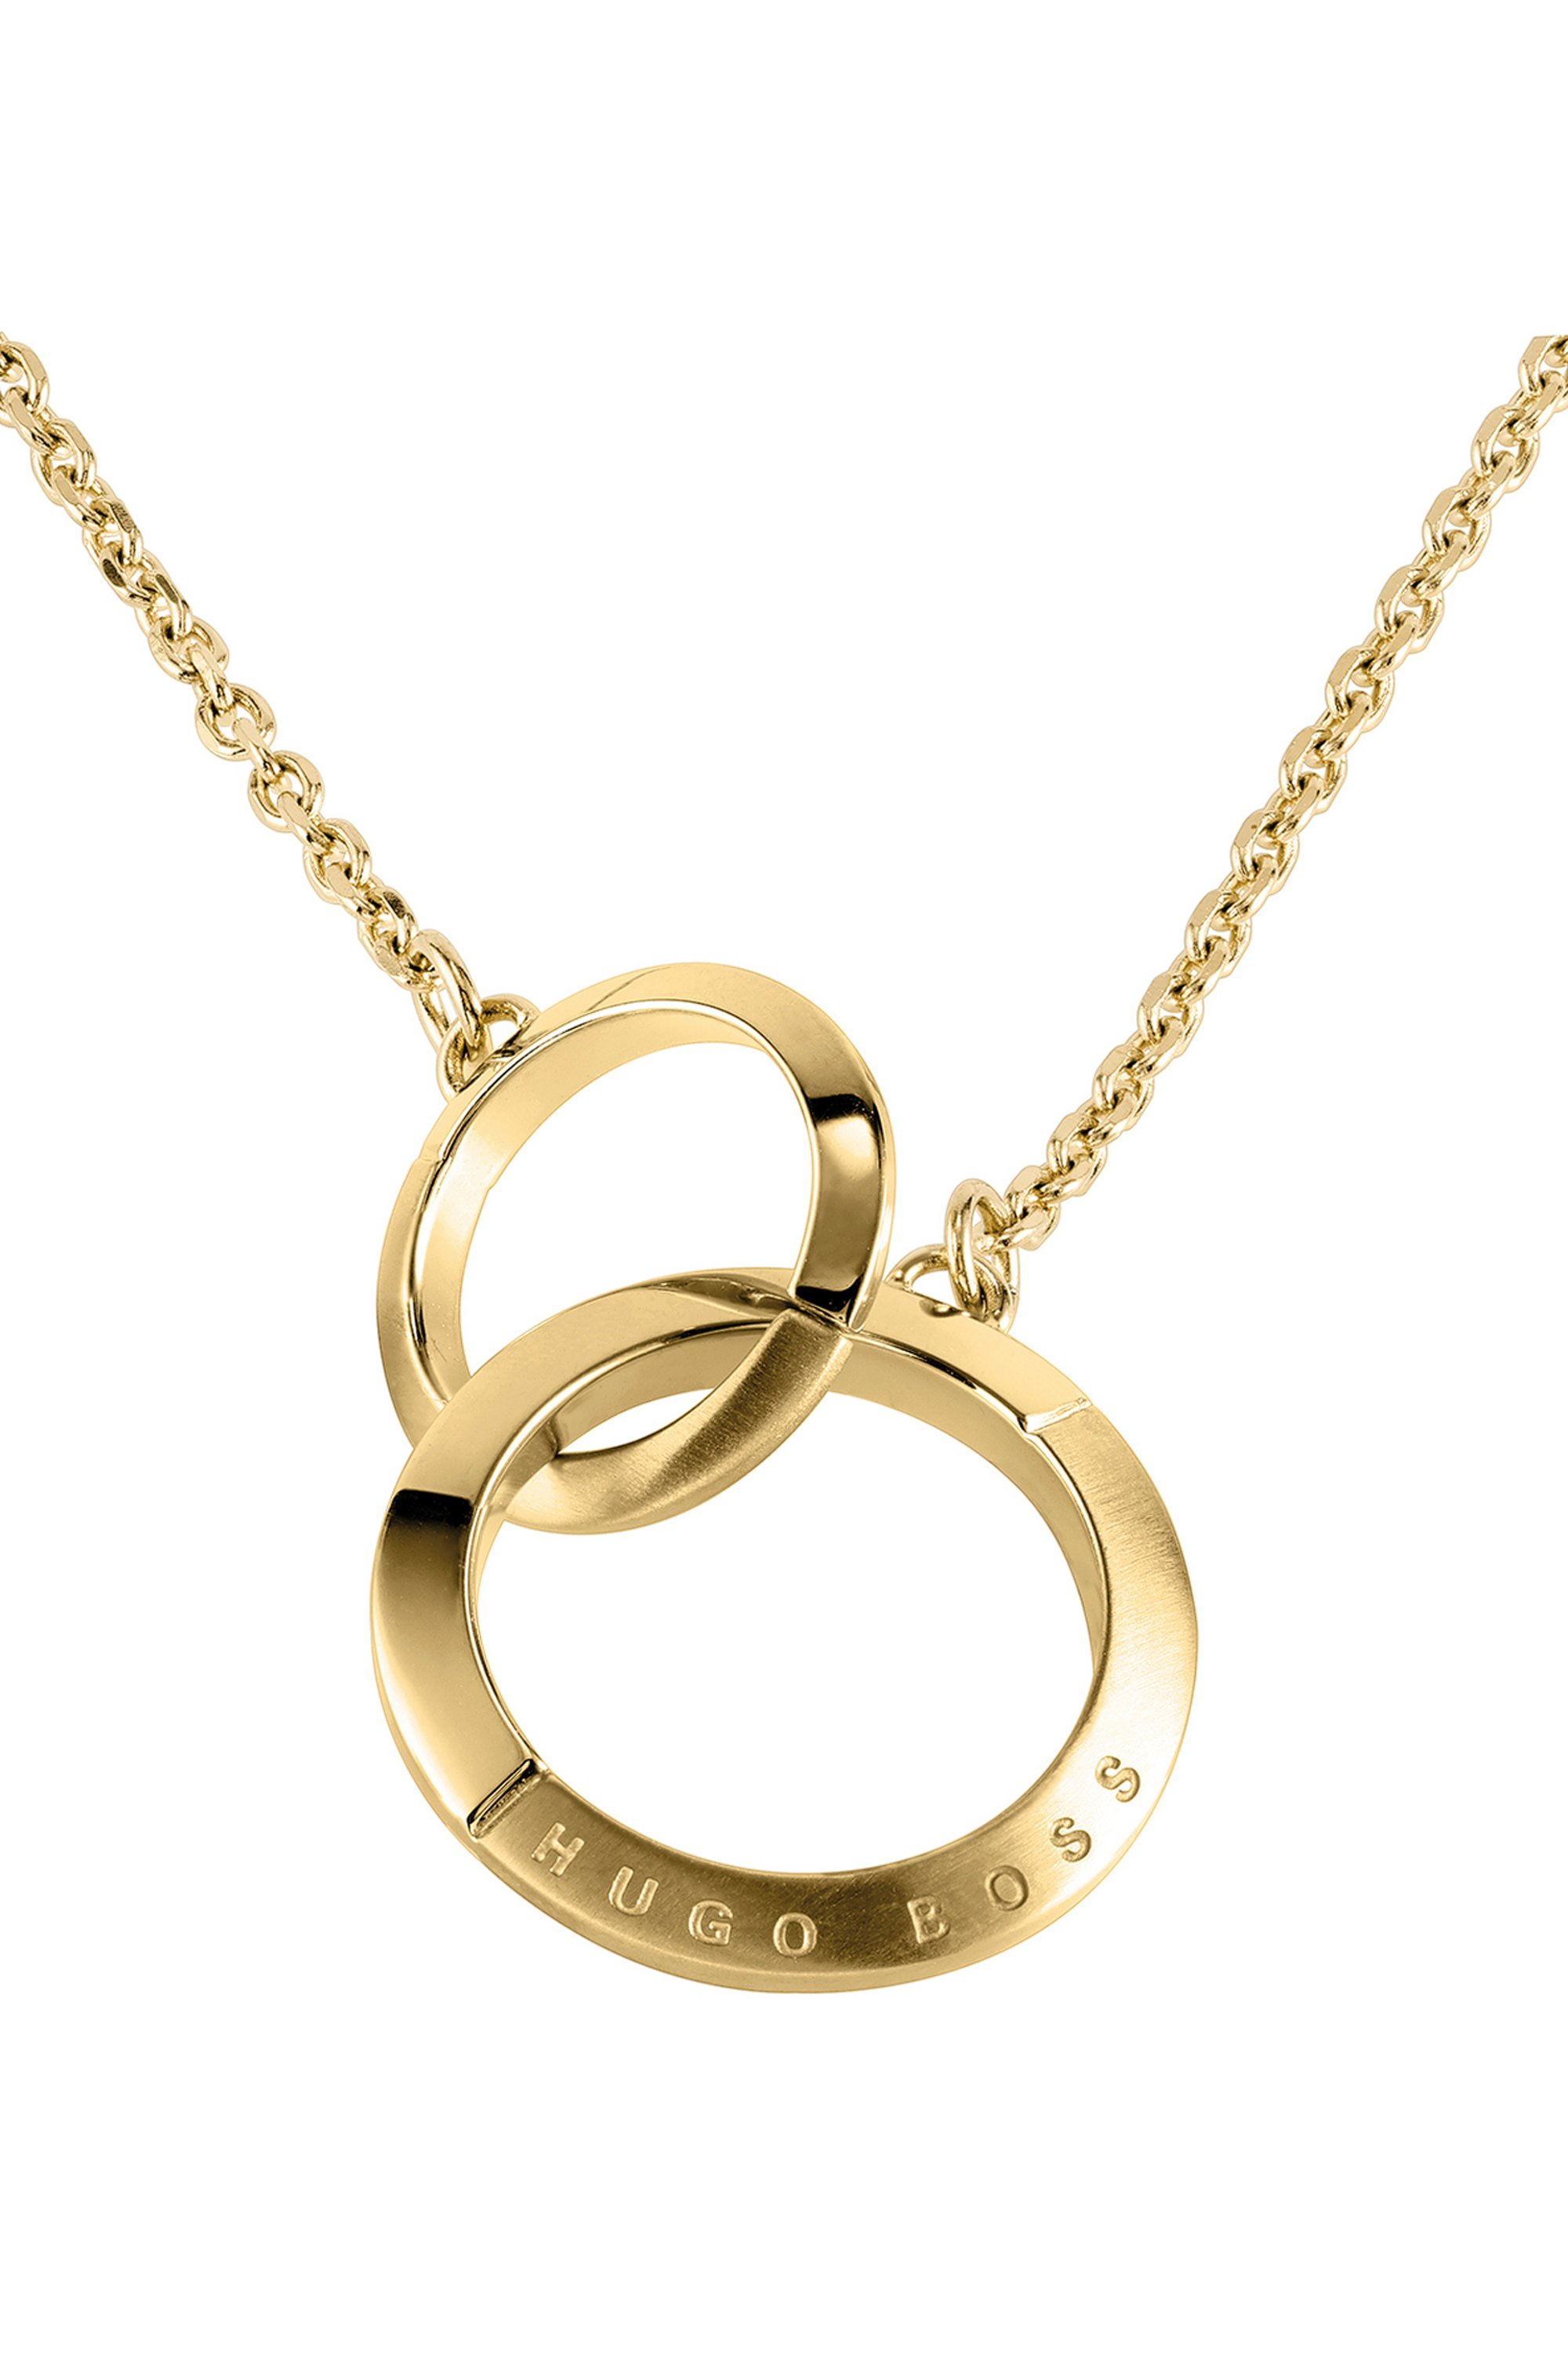 Linked-ring necklace with gold finish and crystals